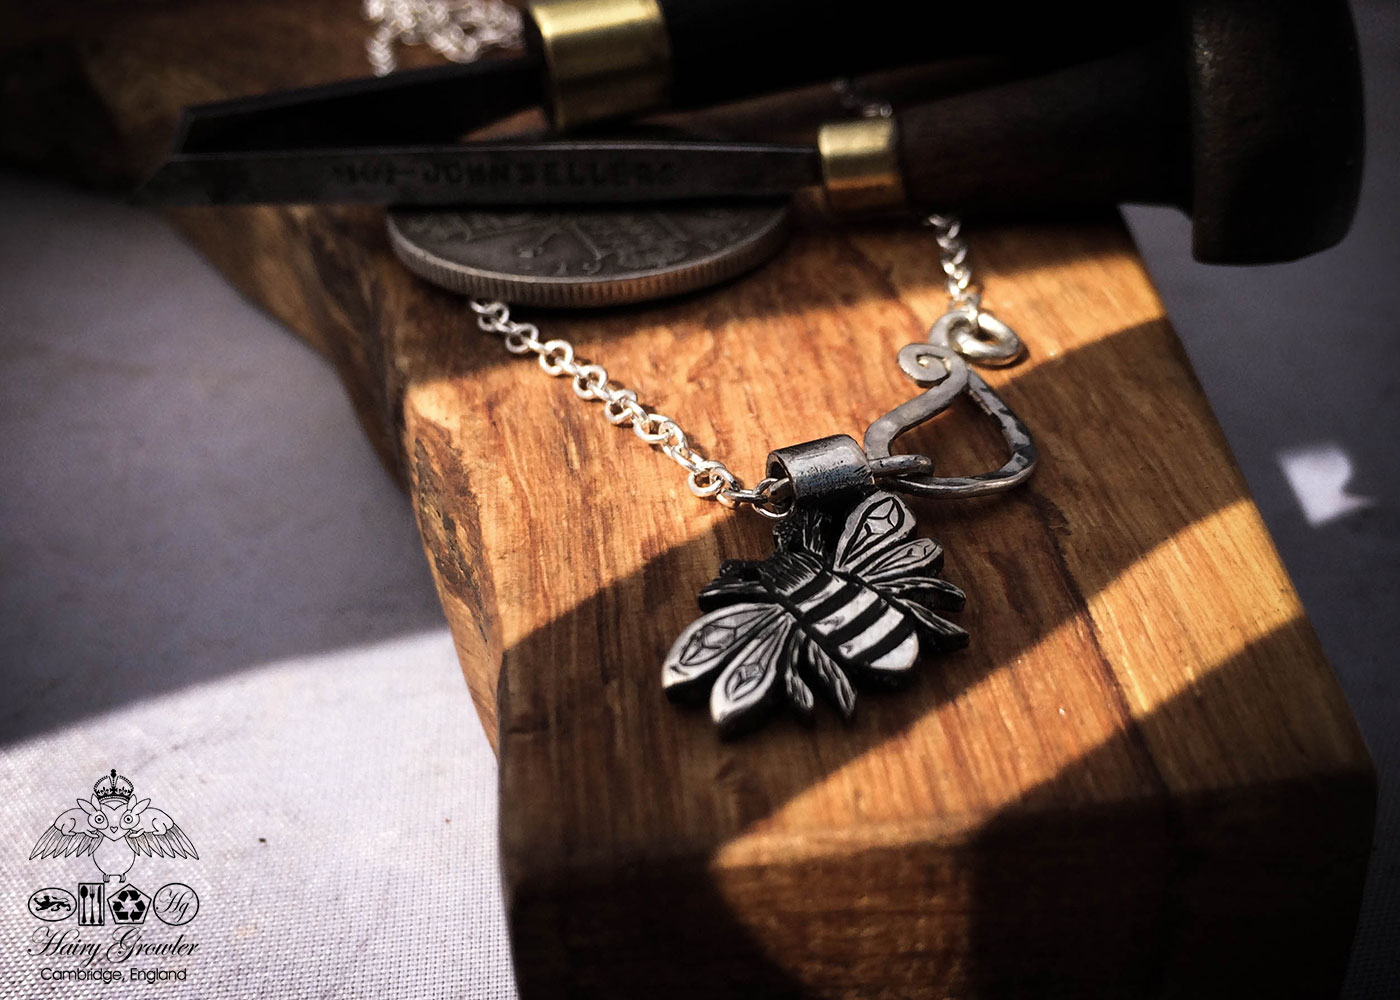 Ethical Bee jewellery handcrafted silver bee charm for a tree sculpture, necklace or bracelet